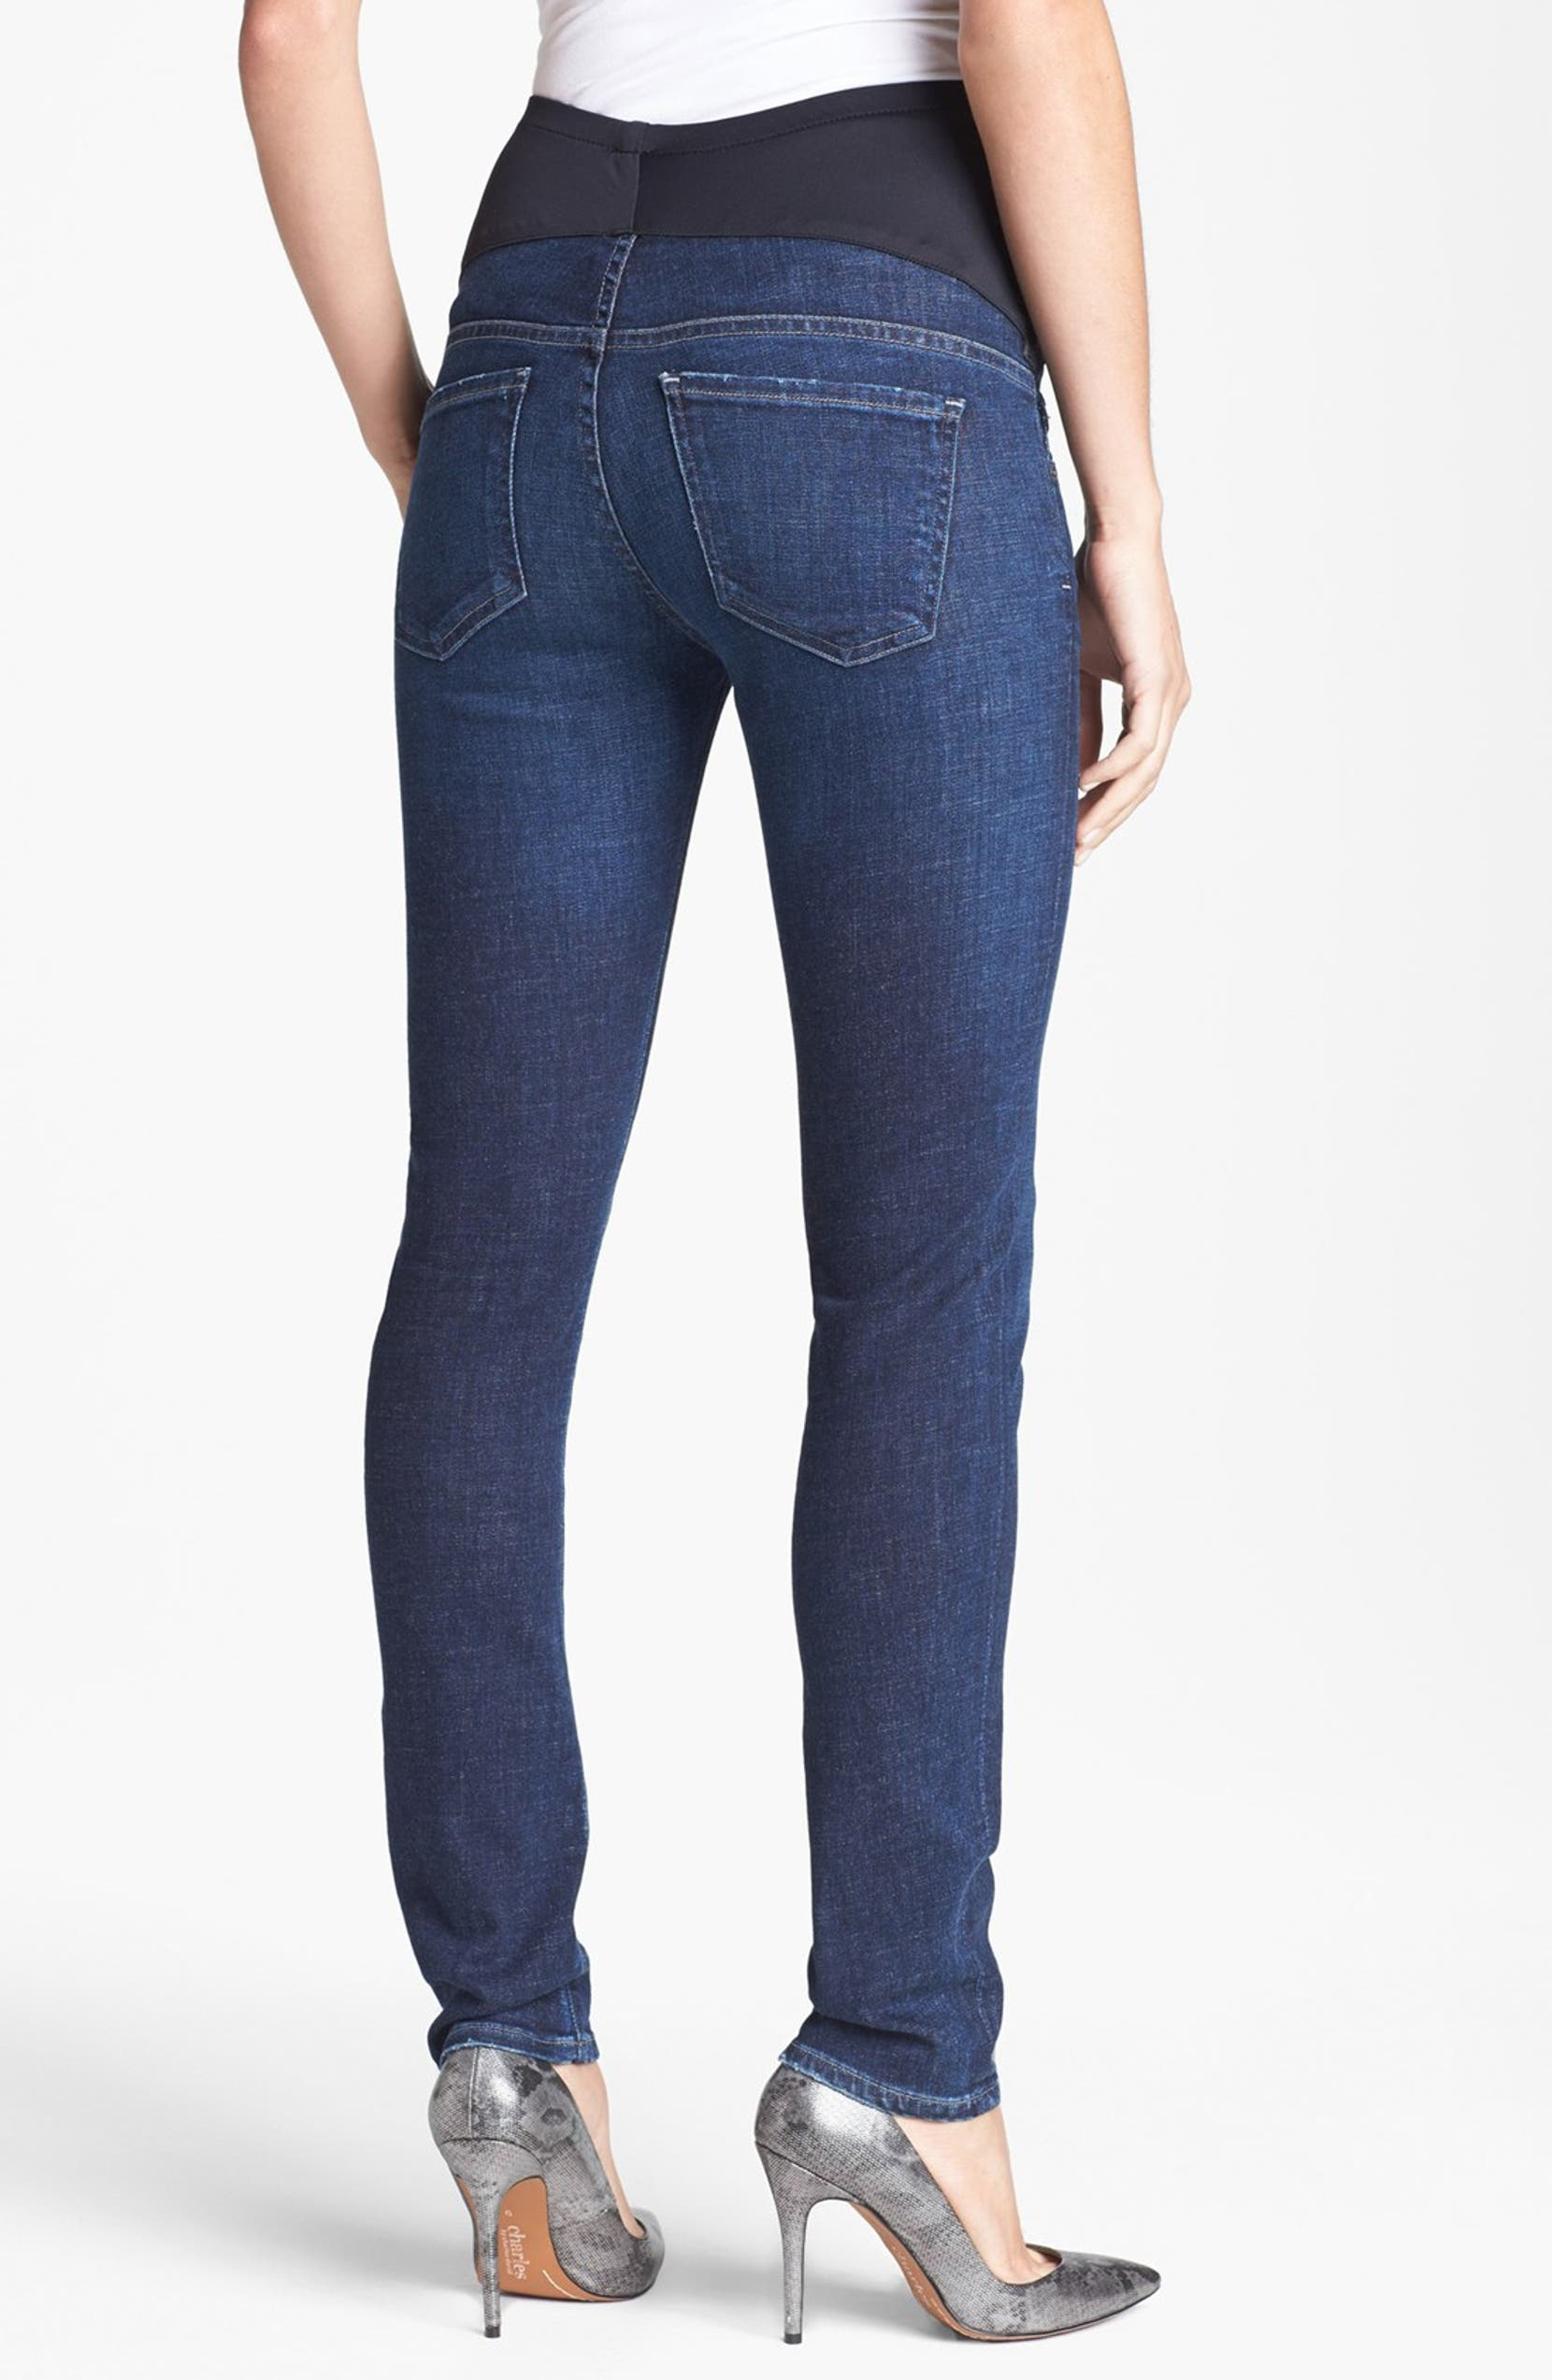 ab51182bc62e7 Citizens of Humanity 'Racer' Maternity Skinny Jeans (Solstice) | Nordstrom